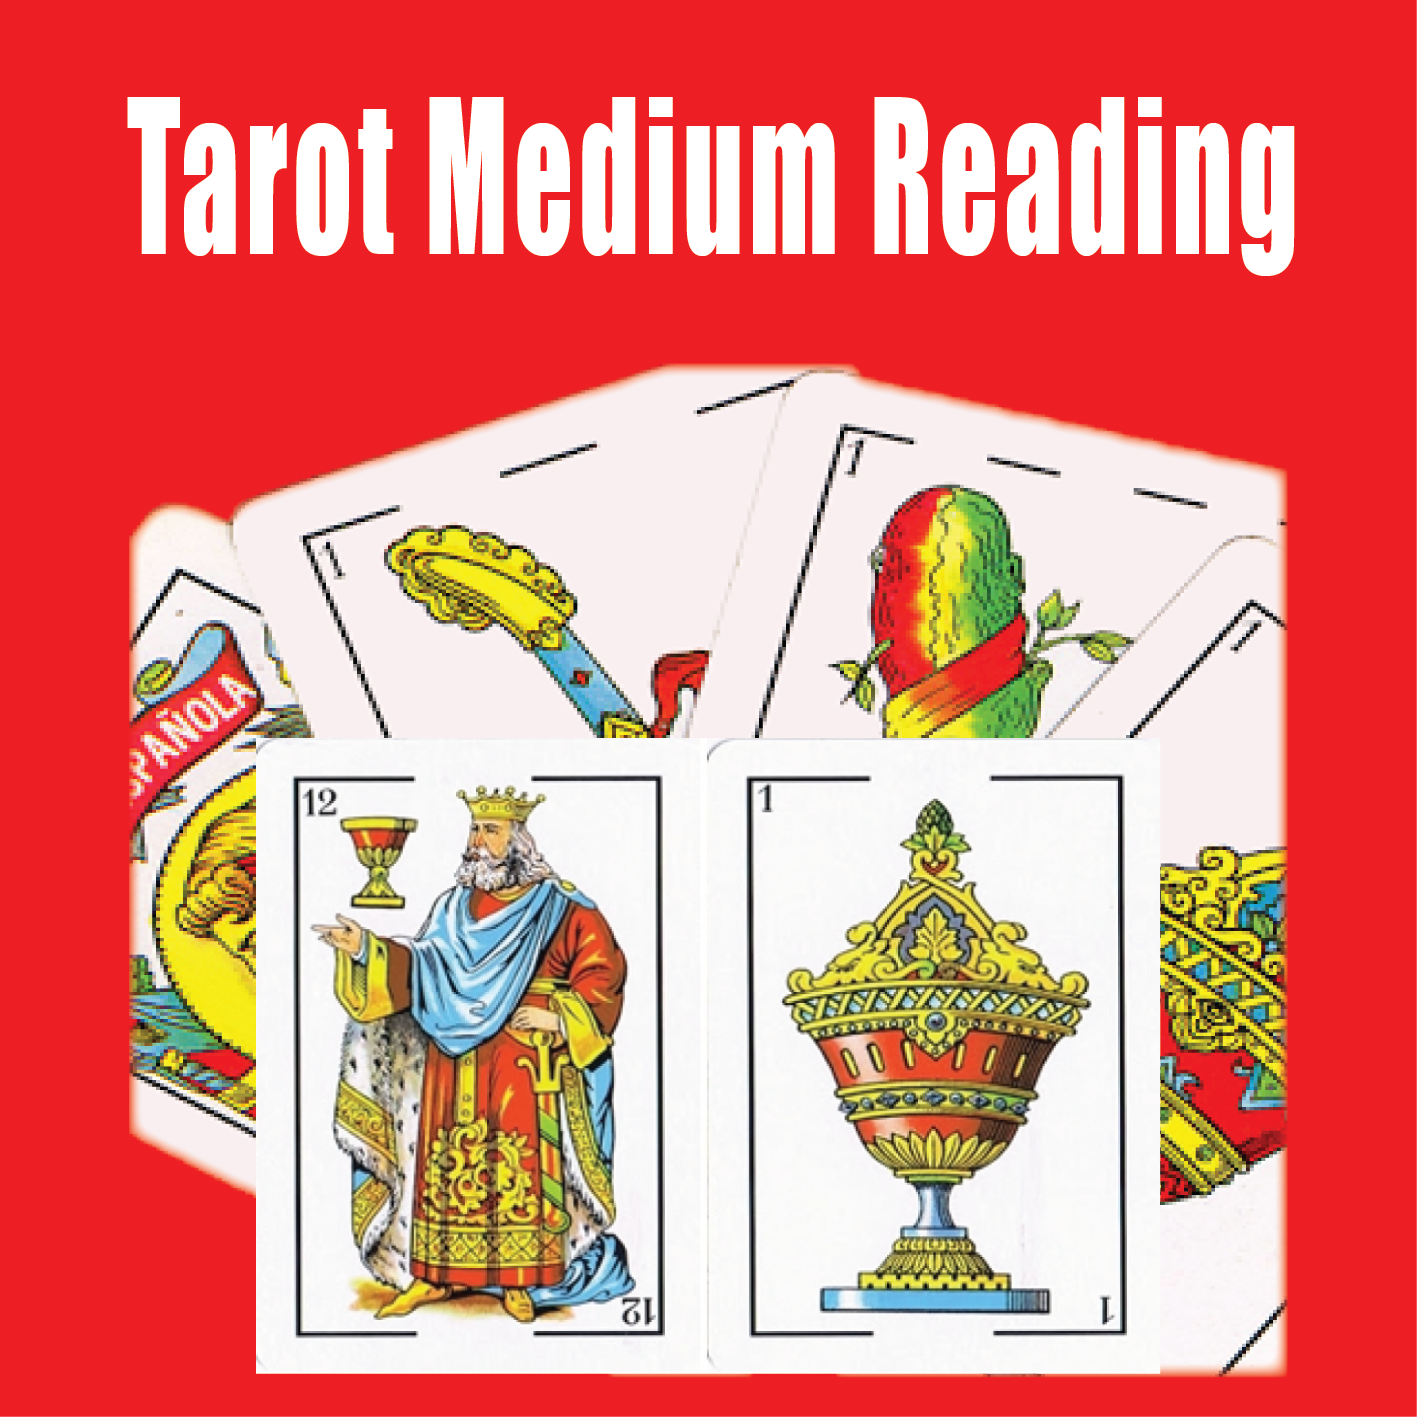 Tarot Medium Reading